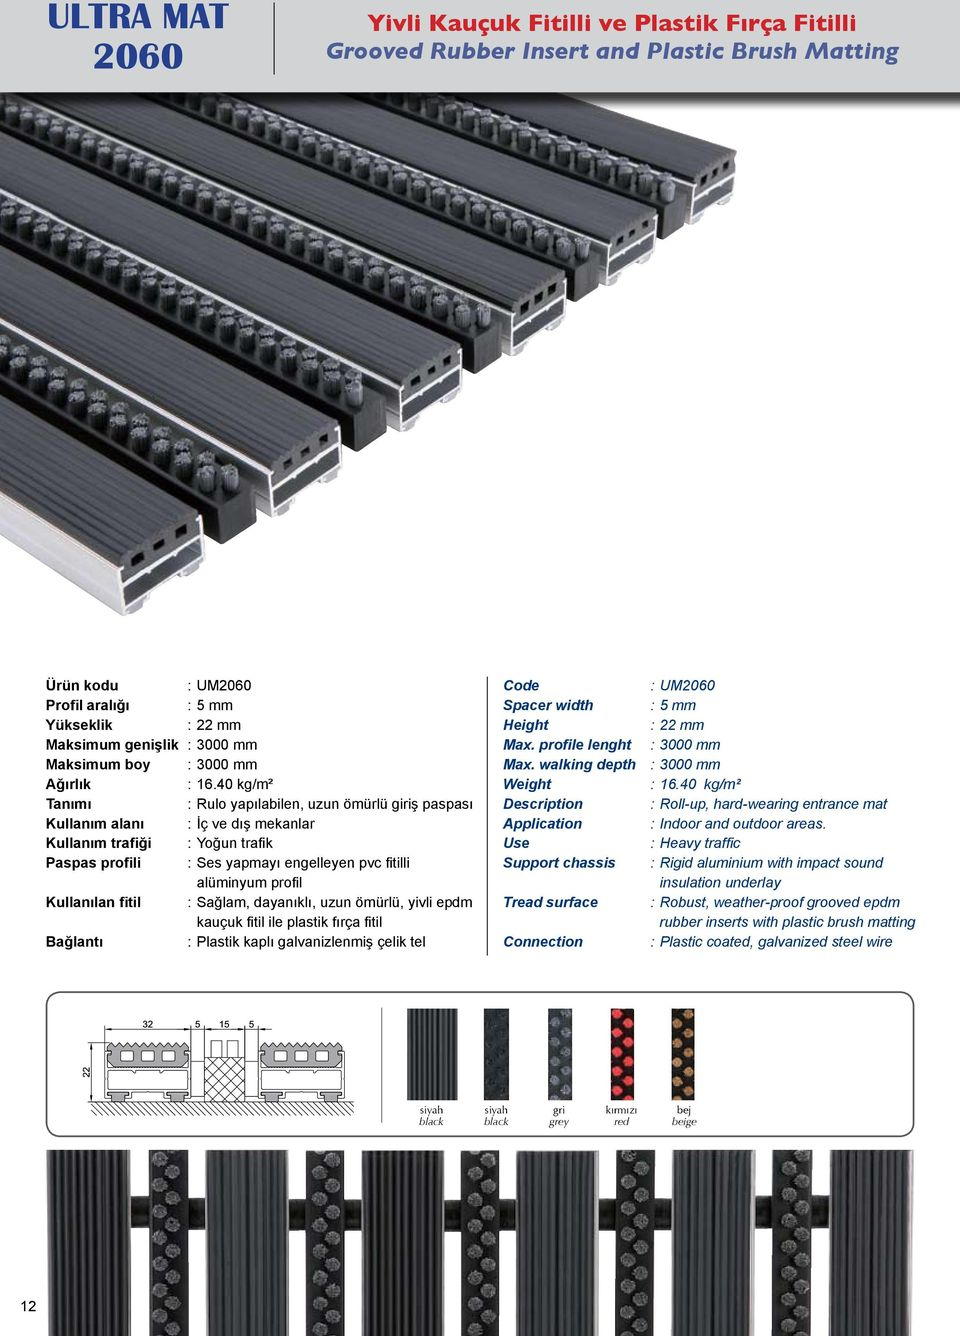 Plastik kaplı galvanizlenmiş çelik tel Spacer width Max. profile lenght Max. walking depth Description Application Support chassis Tread surface Connection : UM2060 : 5 mm : 3000 mm : 3000 mm : 16.